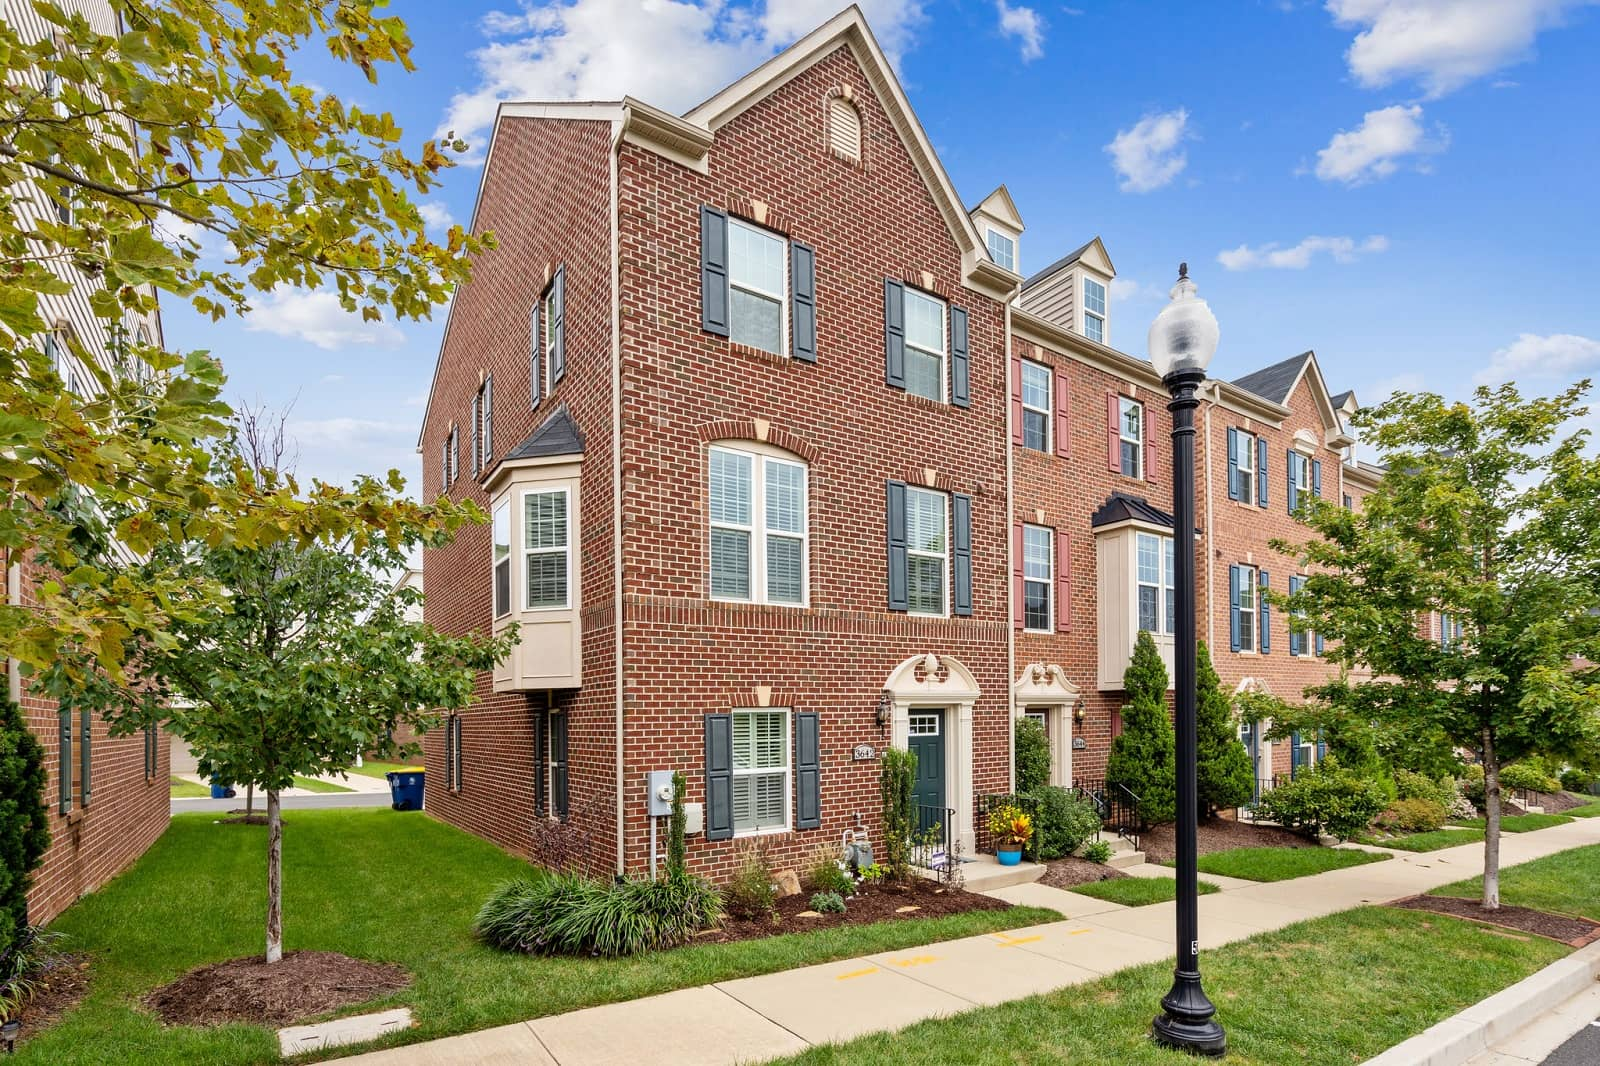 Real Estate Photography in Washinton D.C